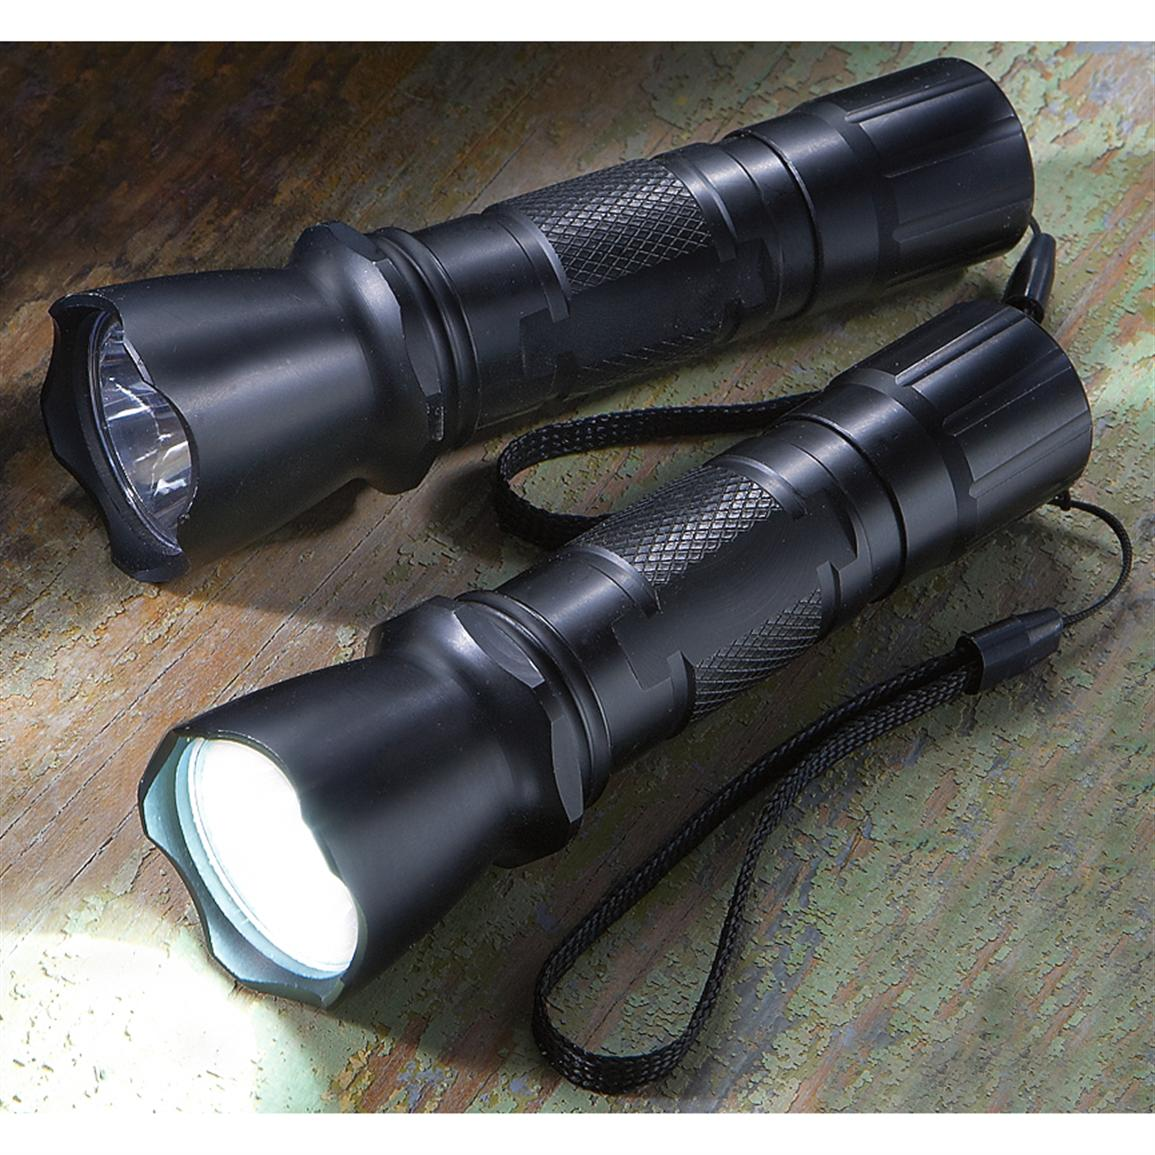 2-Pk. of 160 Lumen Tactical Lights, Black